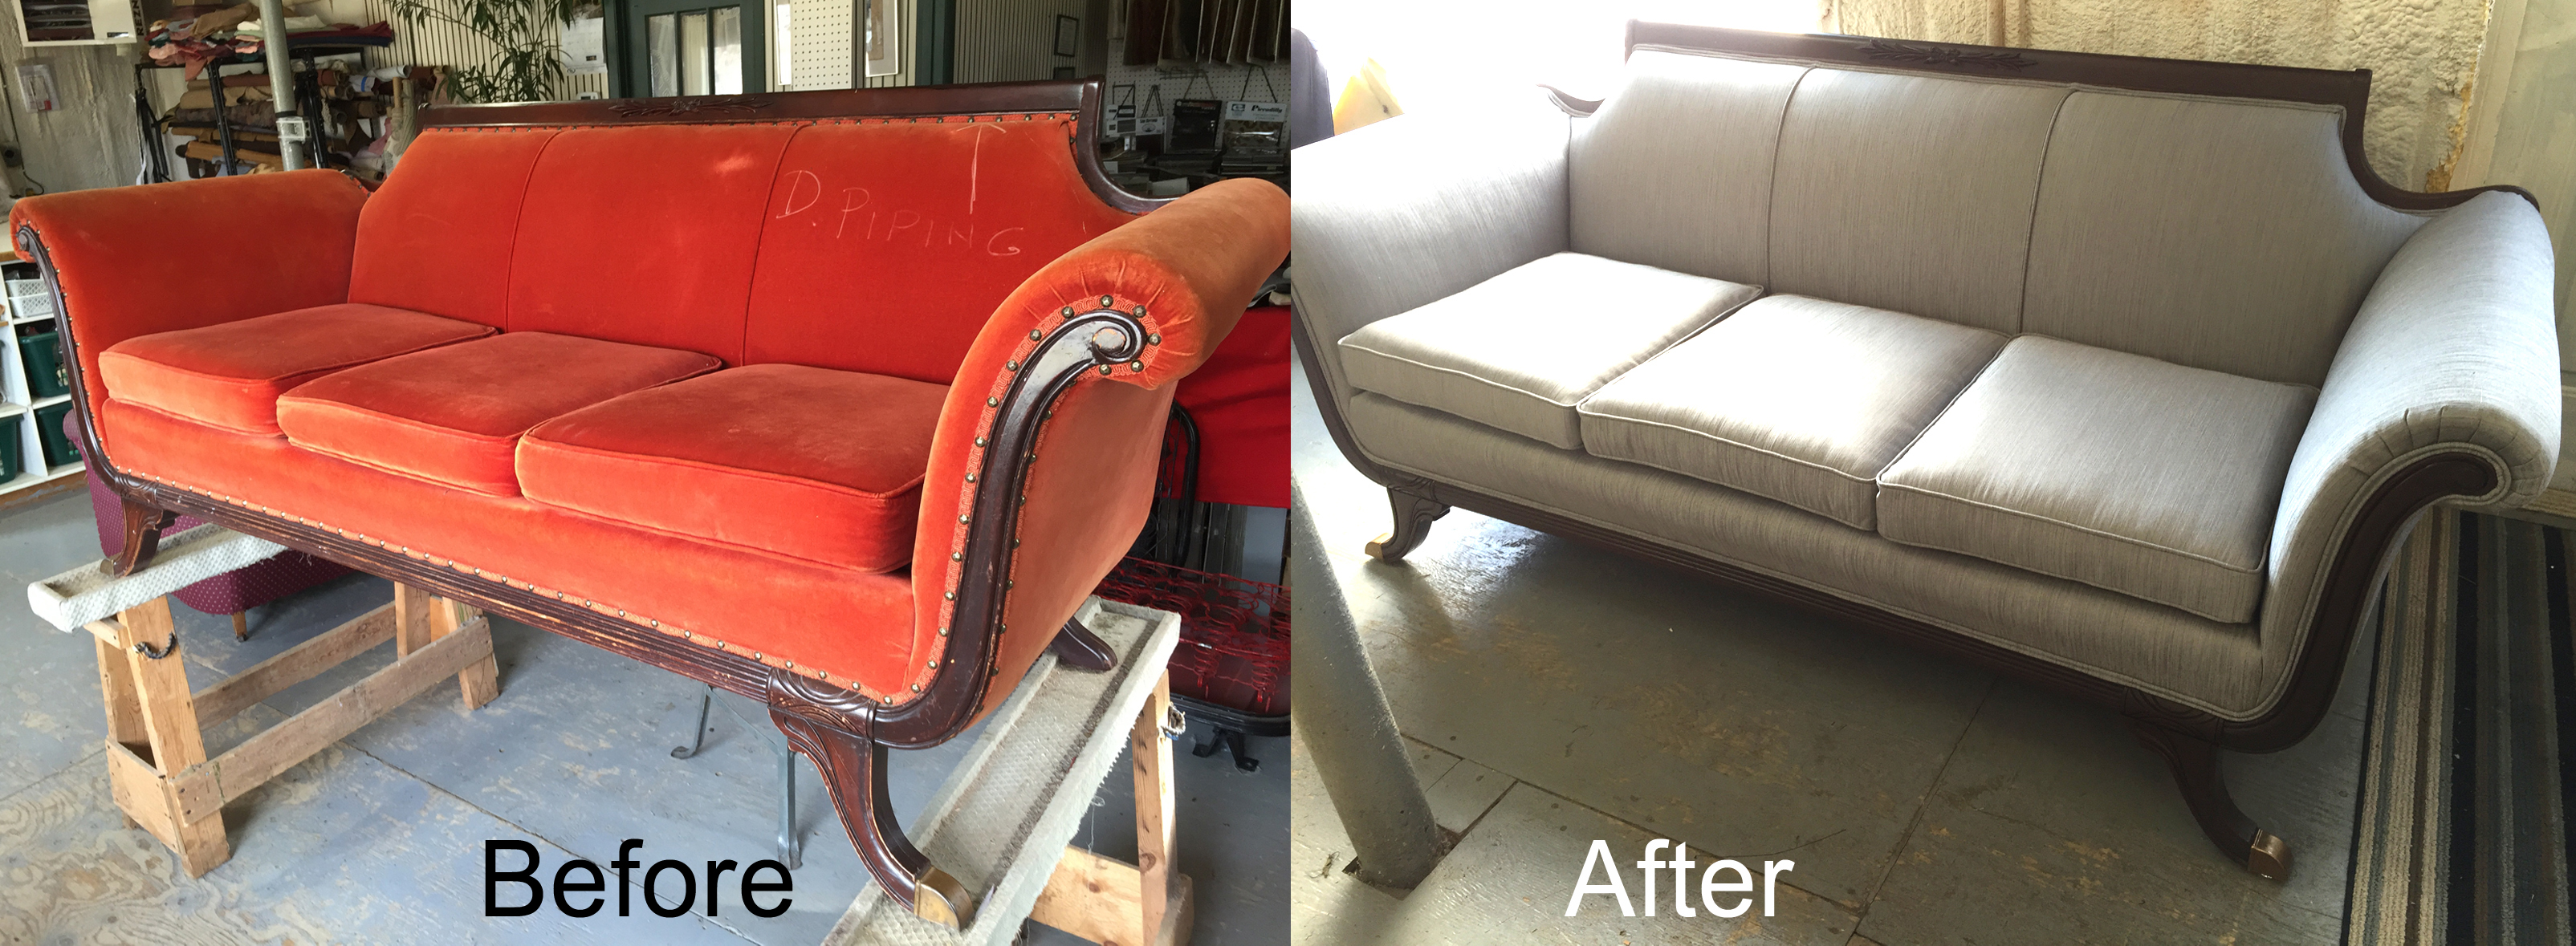 Perfect Furniture Upholstery London Ontario Furniture Refinishing, Upholstery  Toronto Ontario Upholsetery, Furniture Refinishing Toronto Ontario